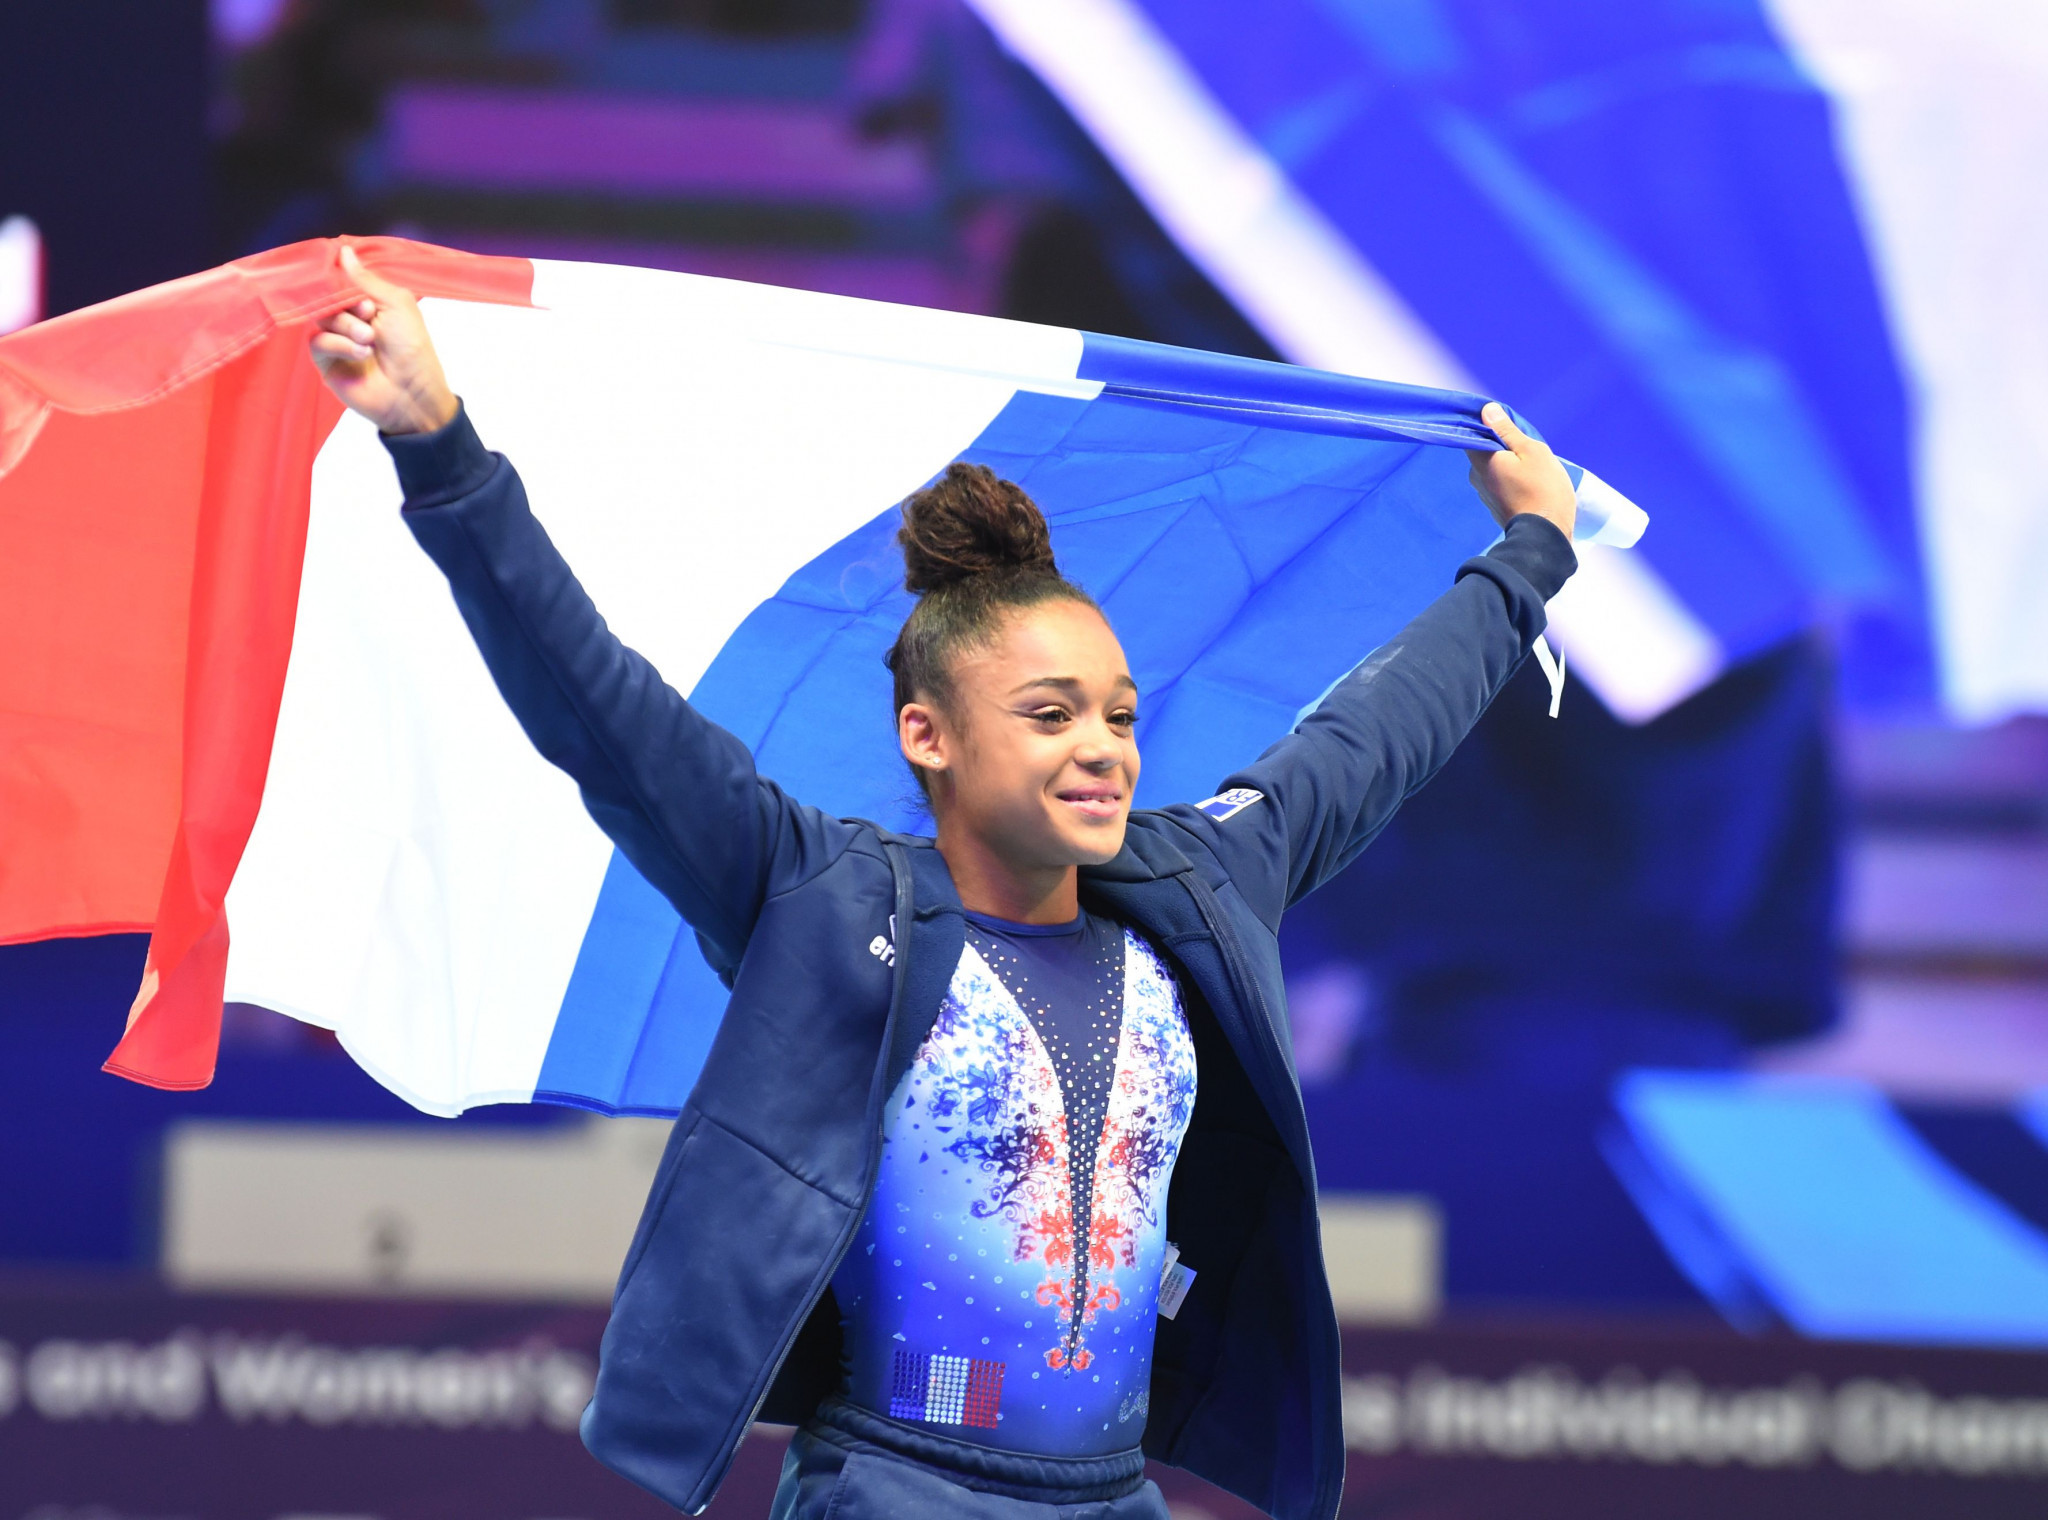 France's Melanie De Jesus Dos Santos took the women's all-around title at the European Artistic Gymnastics Individual Championships ©Getty Images